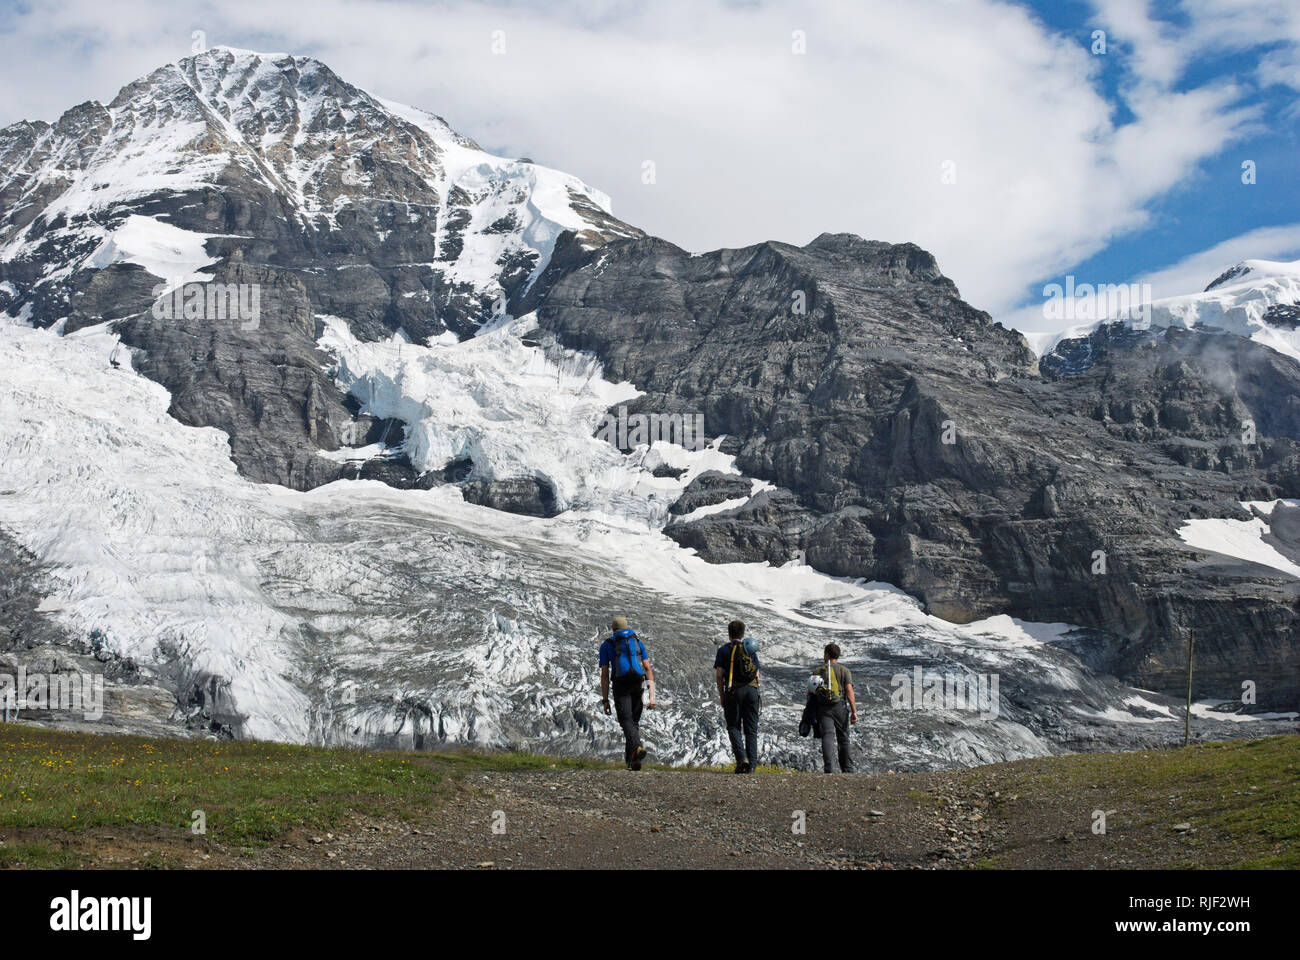 hikers under the nort face of the Mönch glacier, Bernese Alps, Switzerland Stock Photo